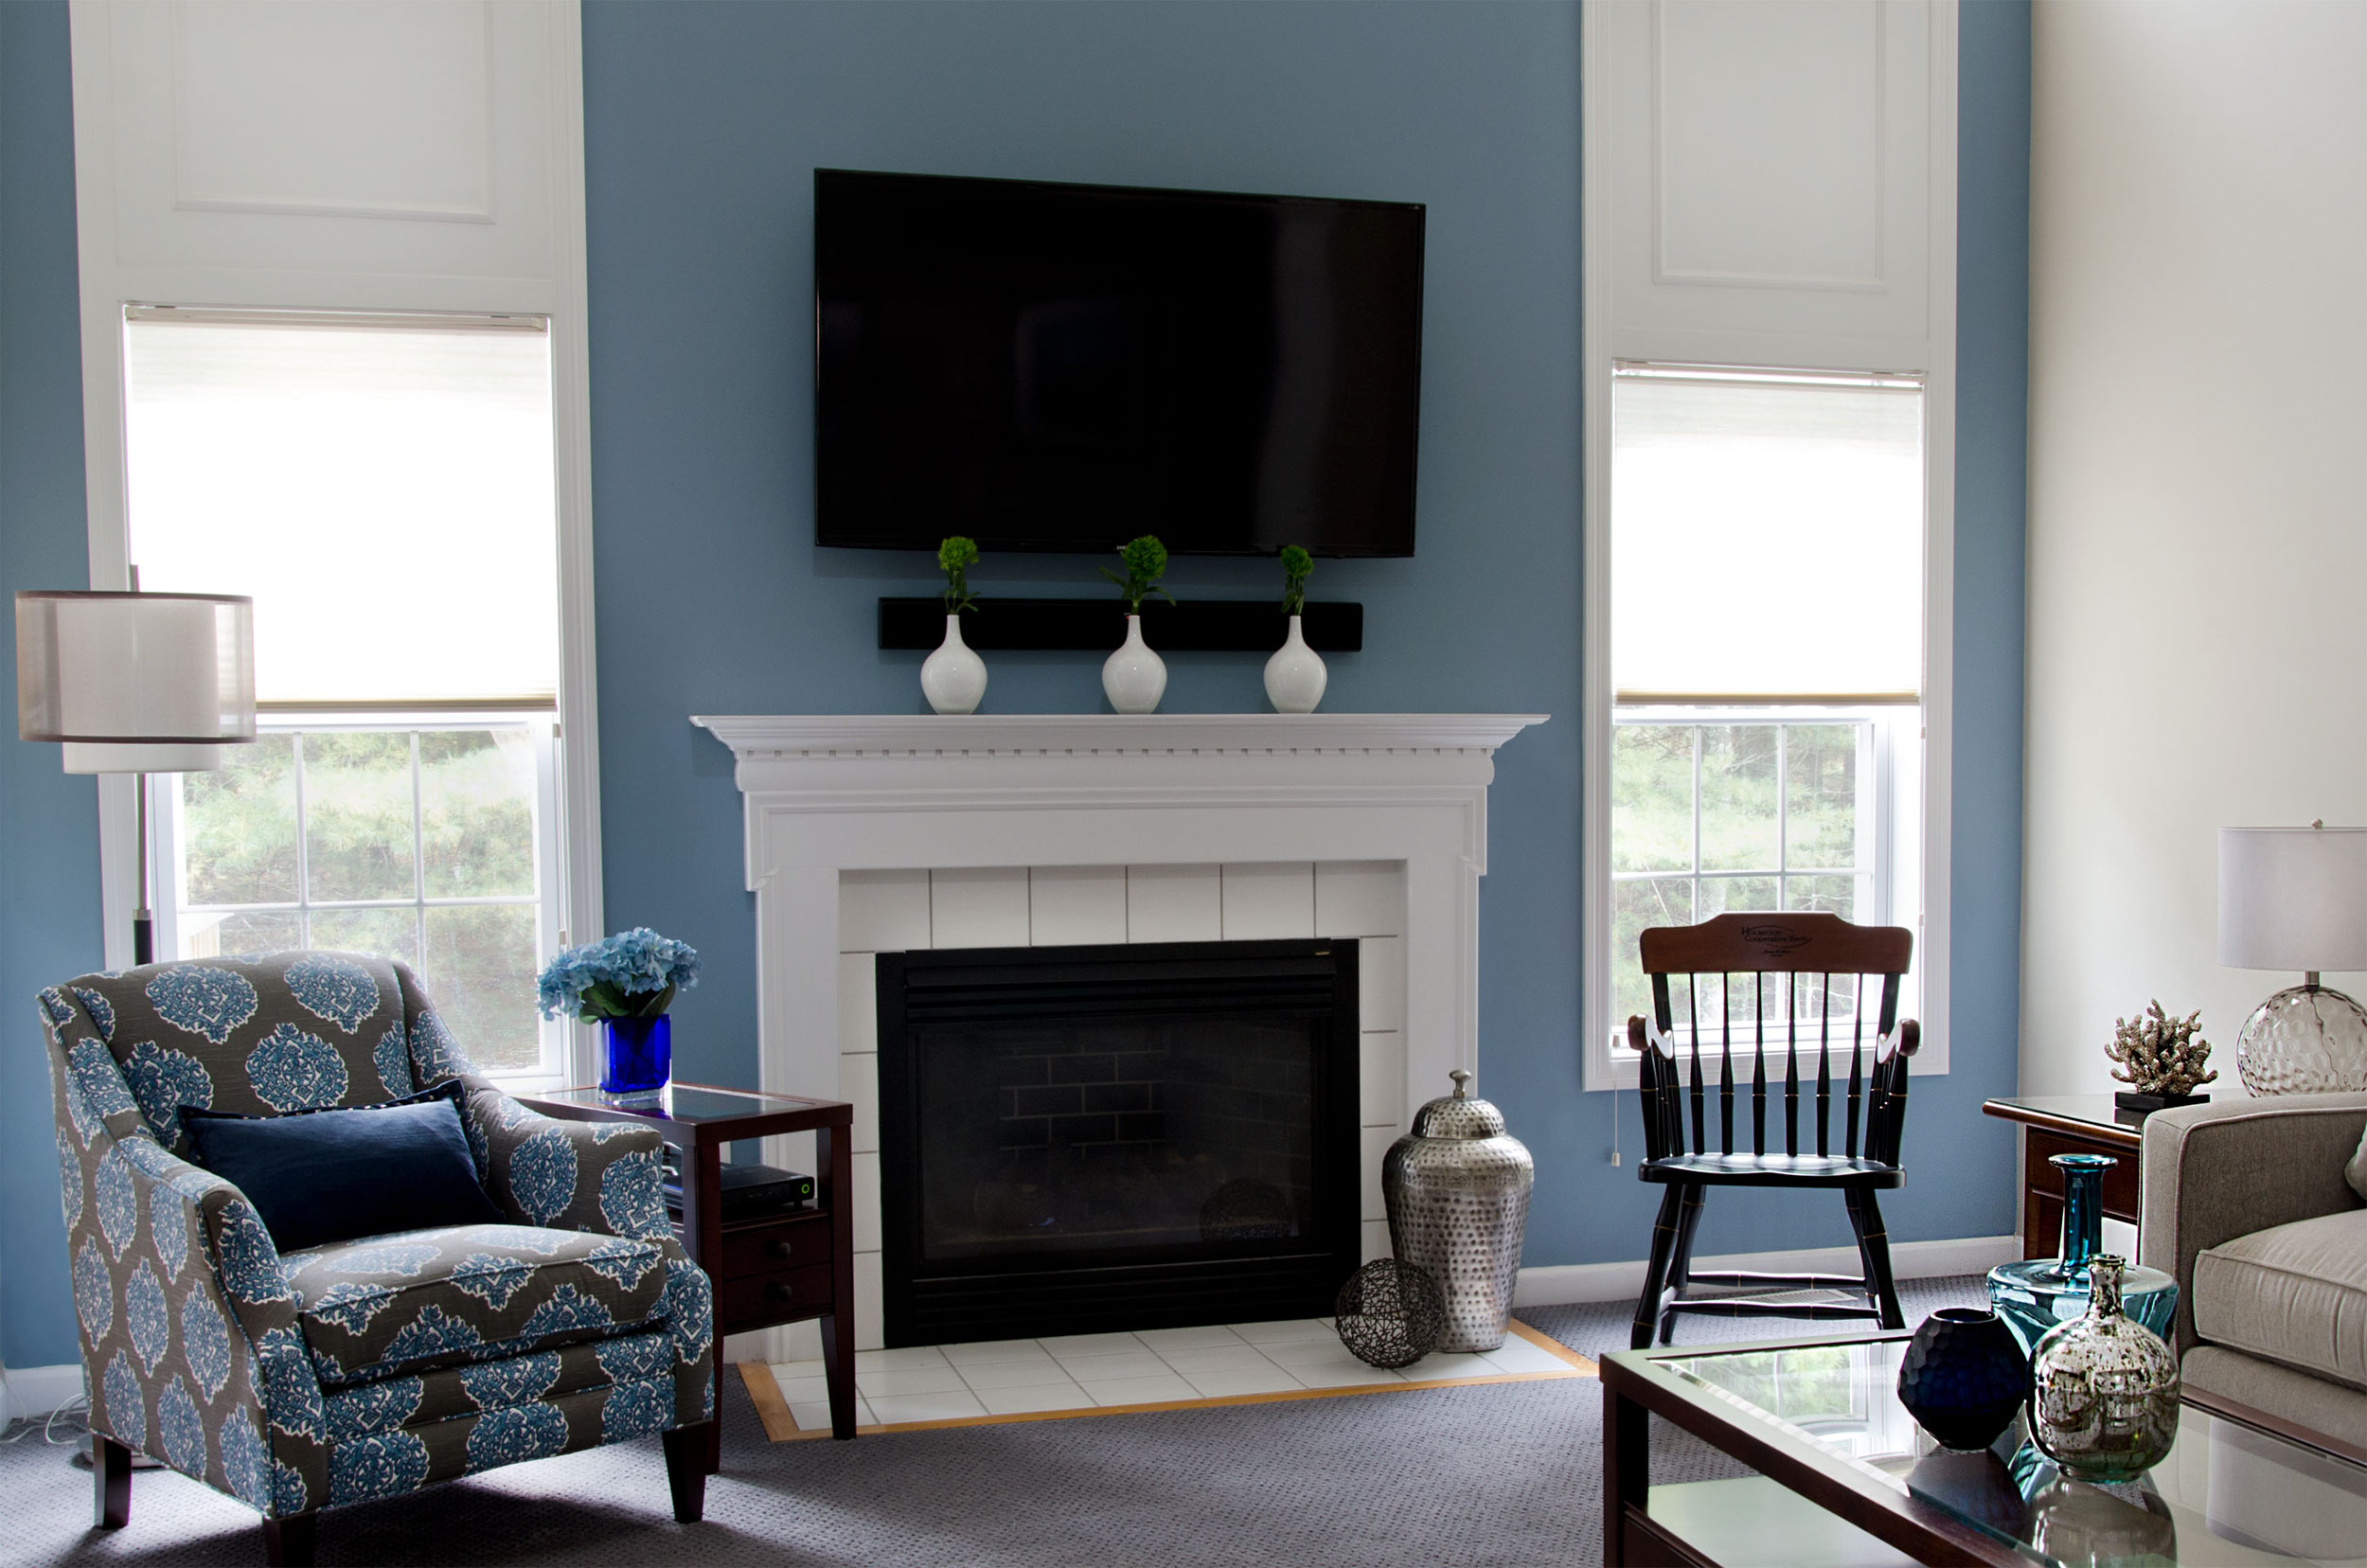 Plymouth, MA Living room interior desing by Susan Curtis